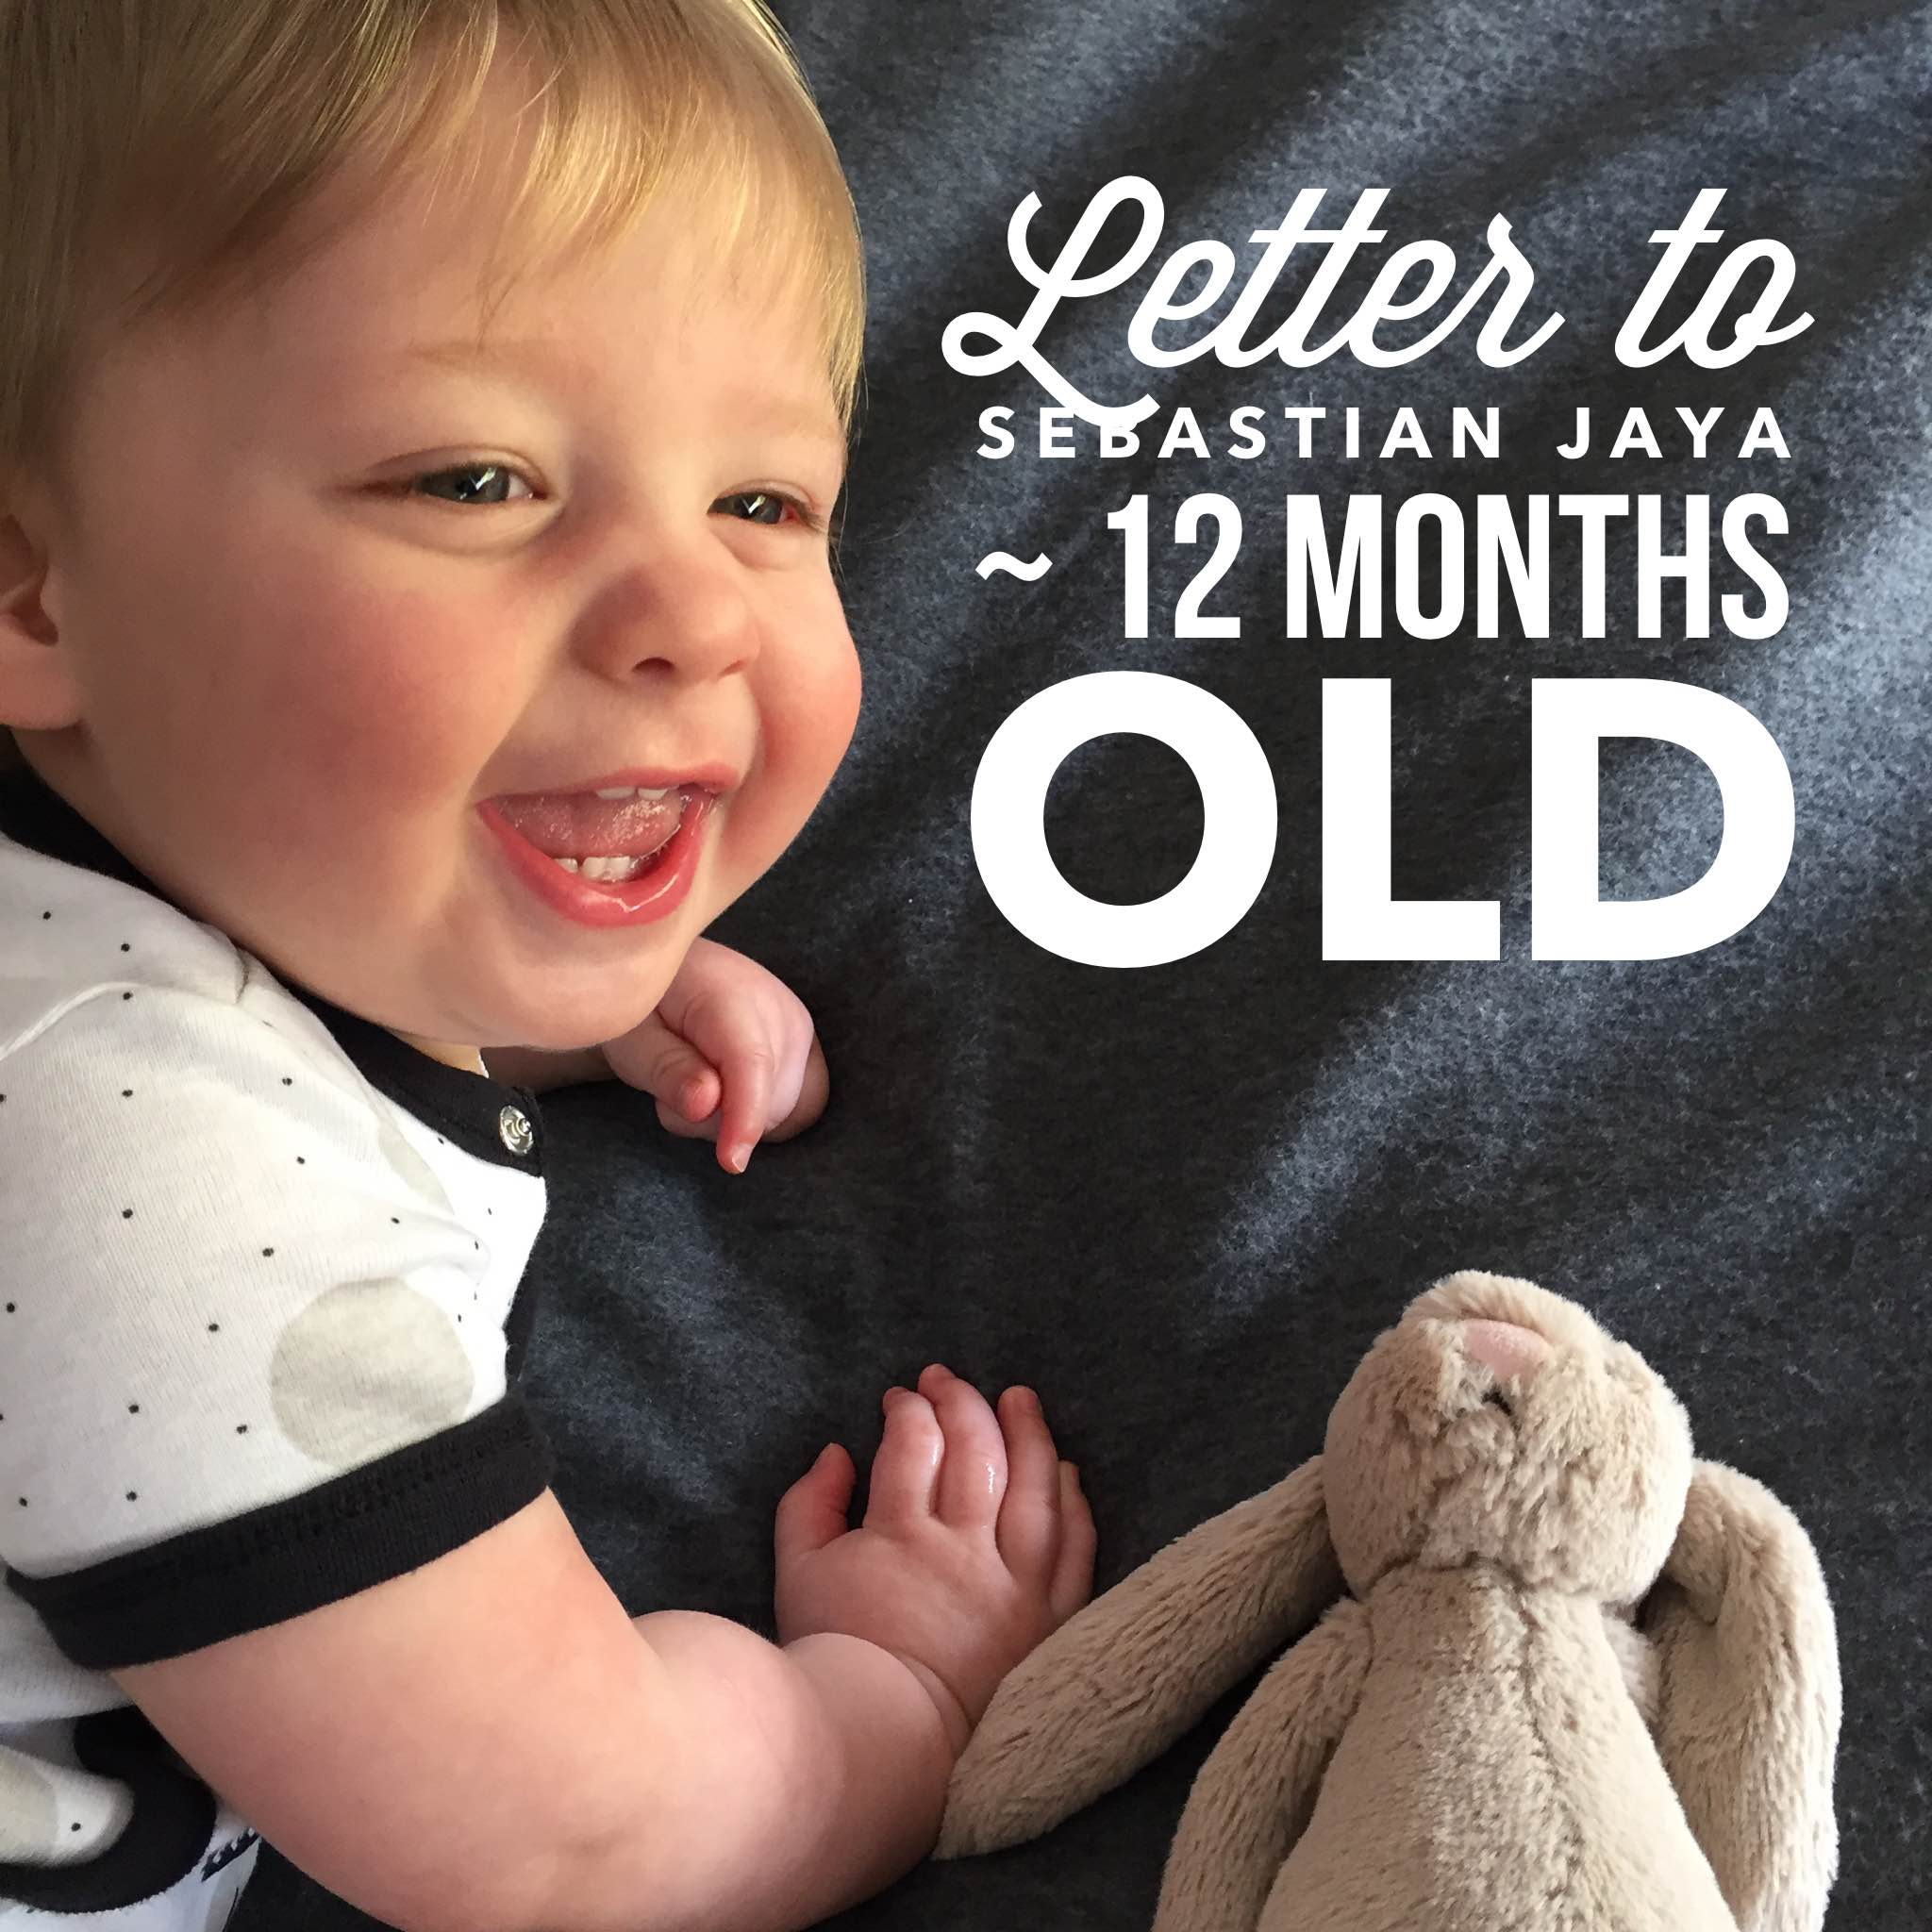 letter-to-sebastian-jaya-12-months-old-title-pic